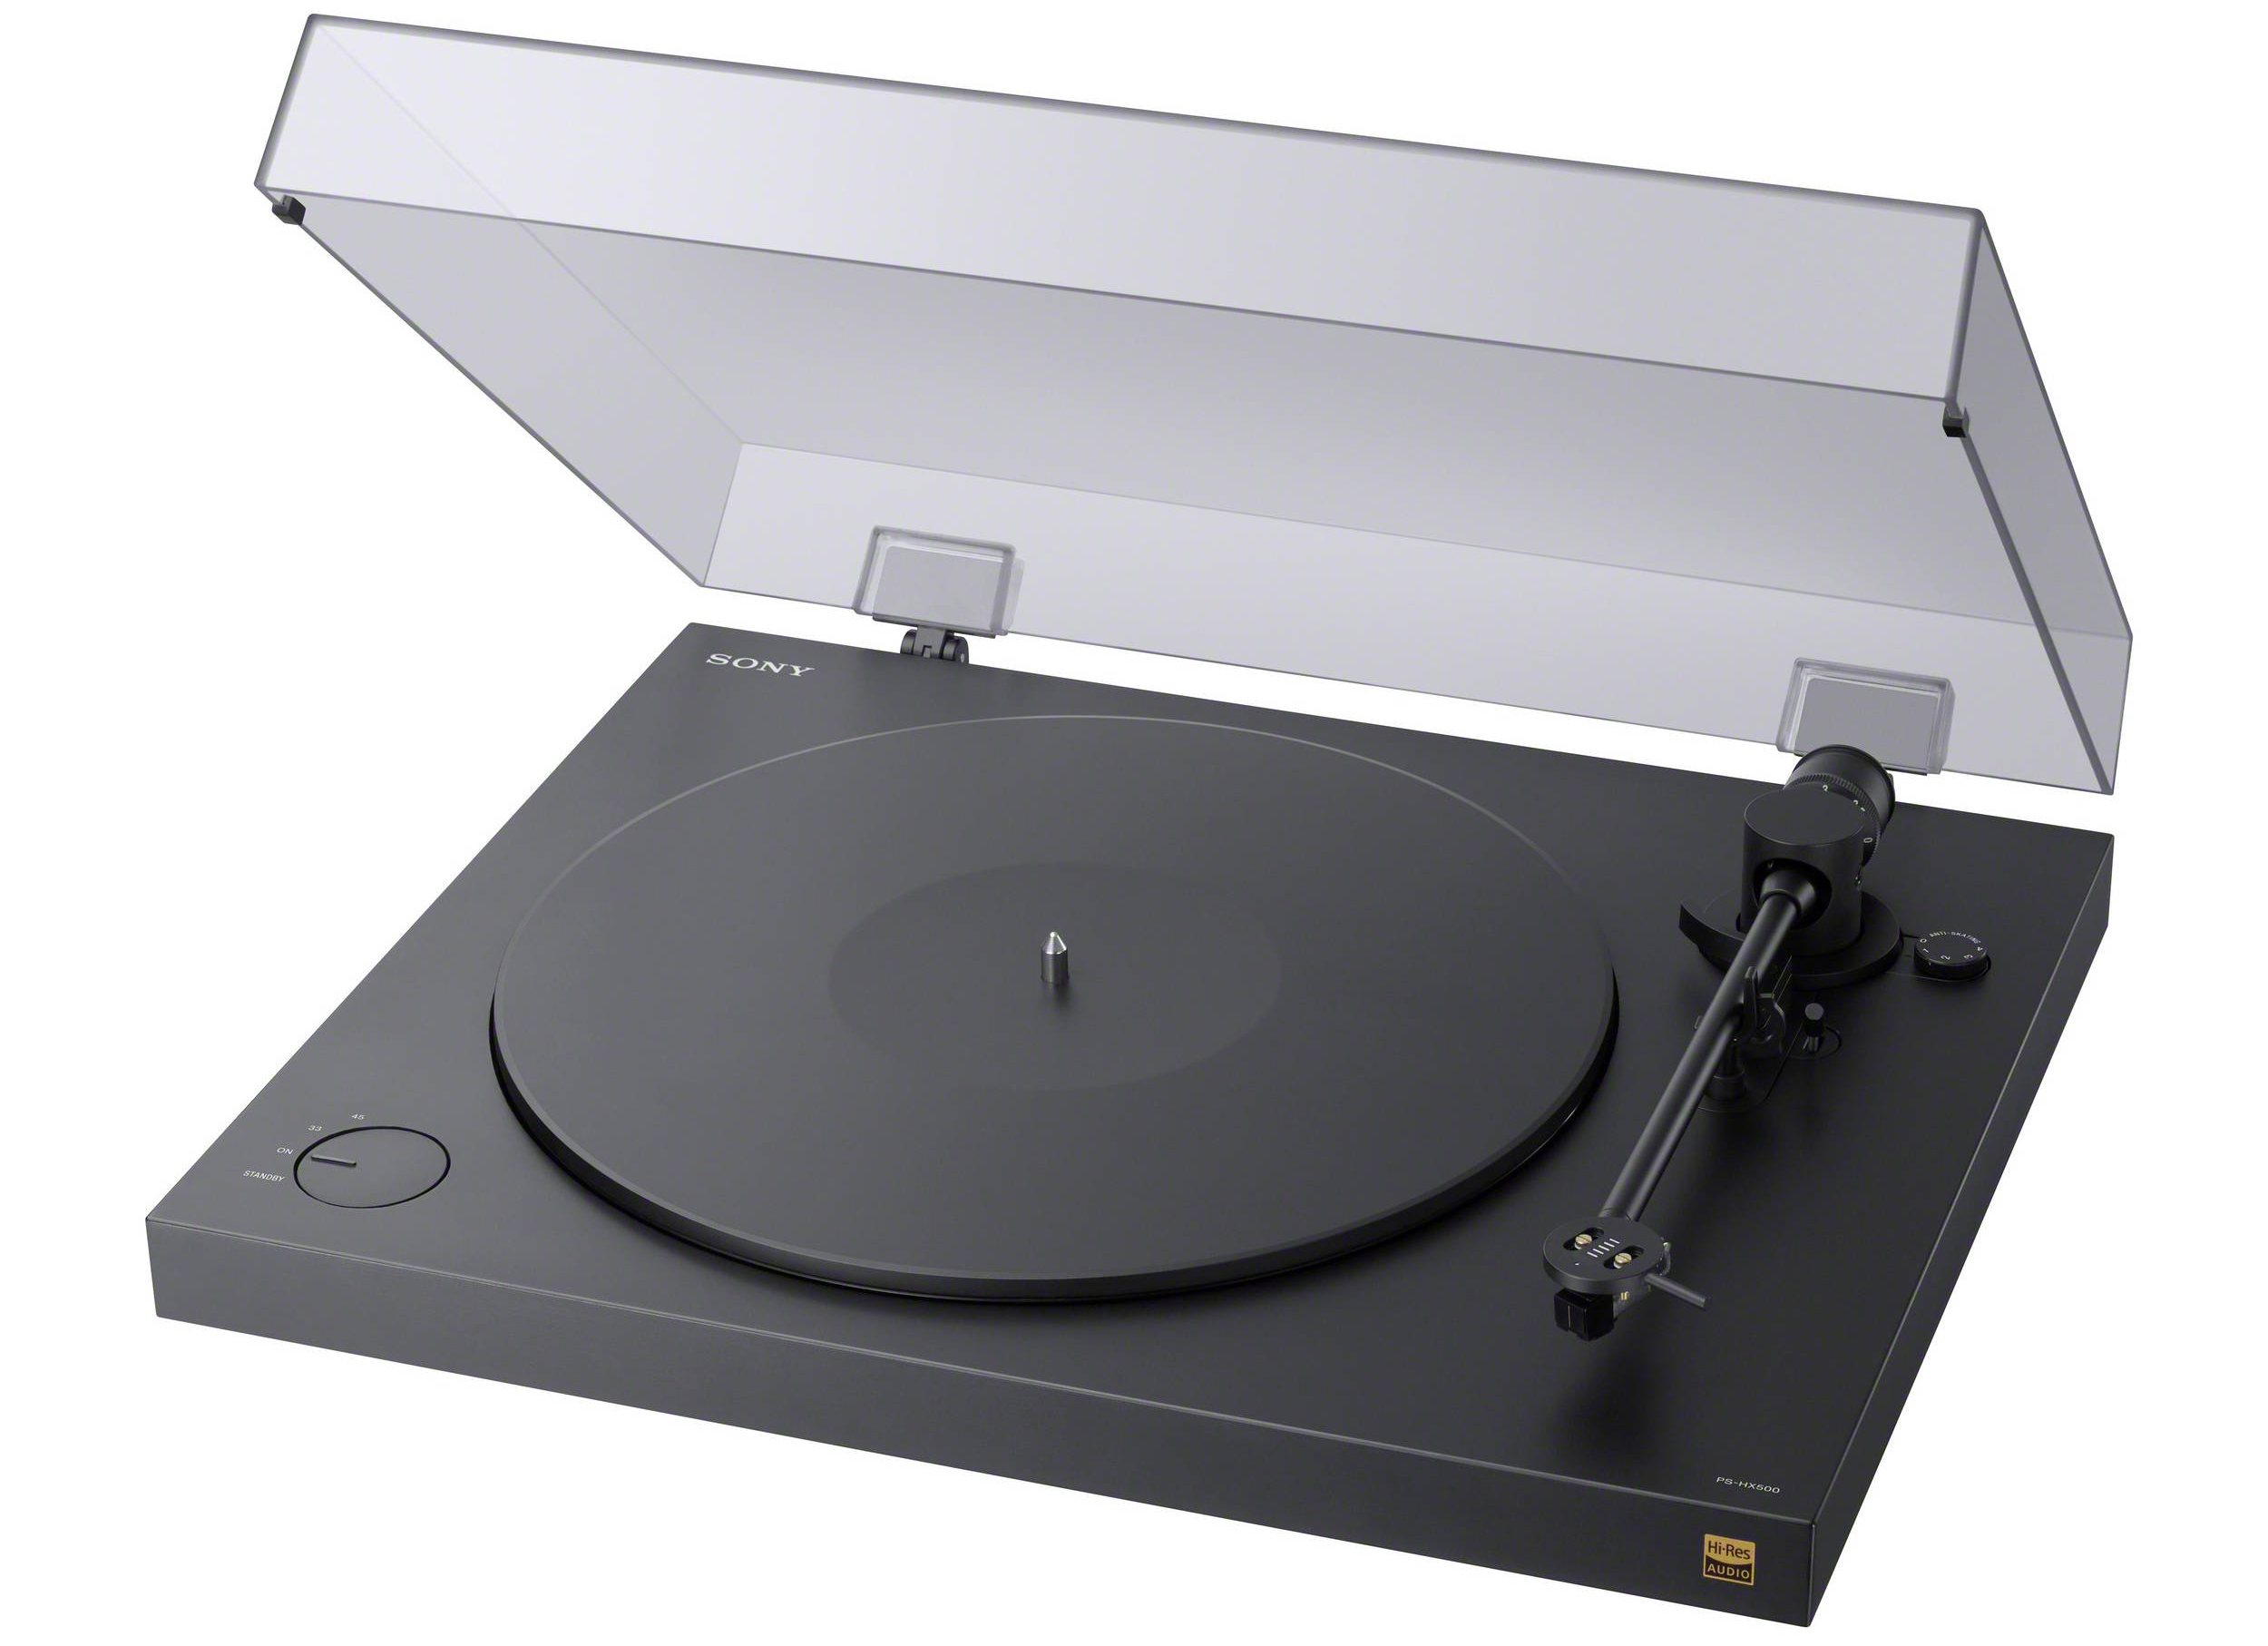 Audio Technica AT LP120 USB Turntable ($299)